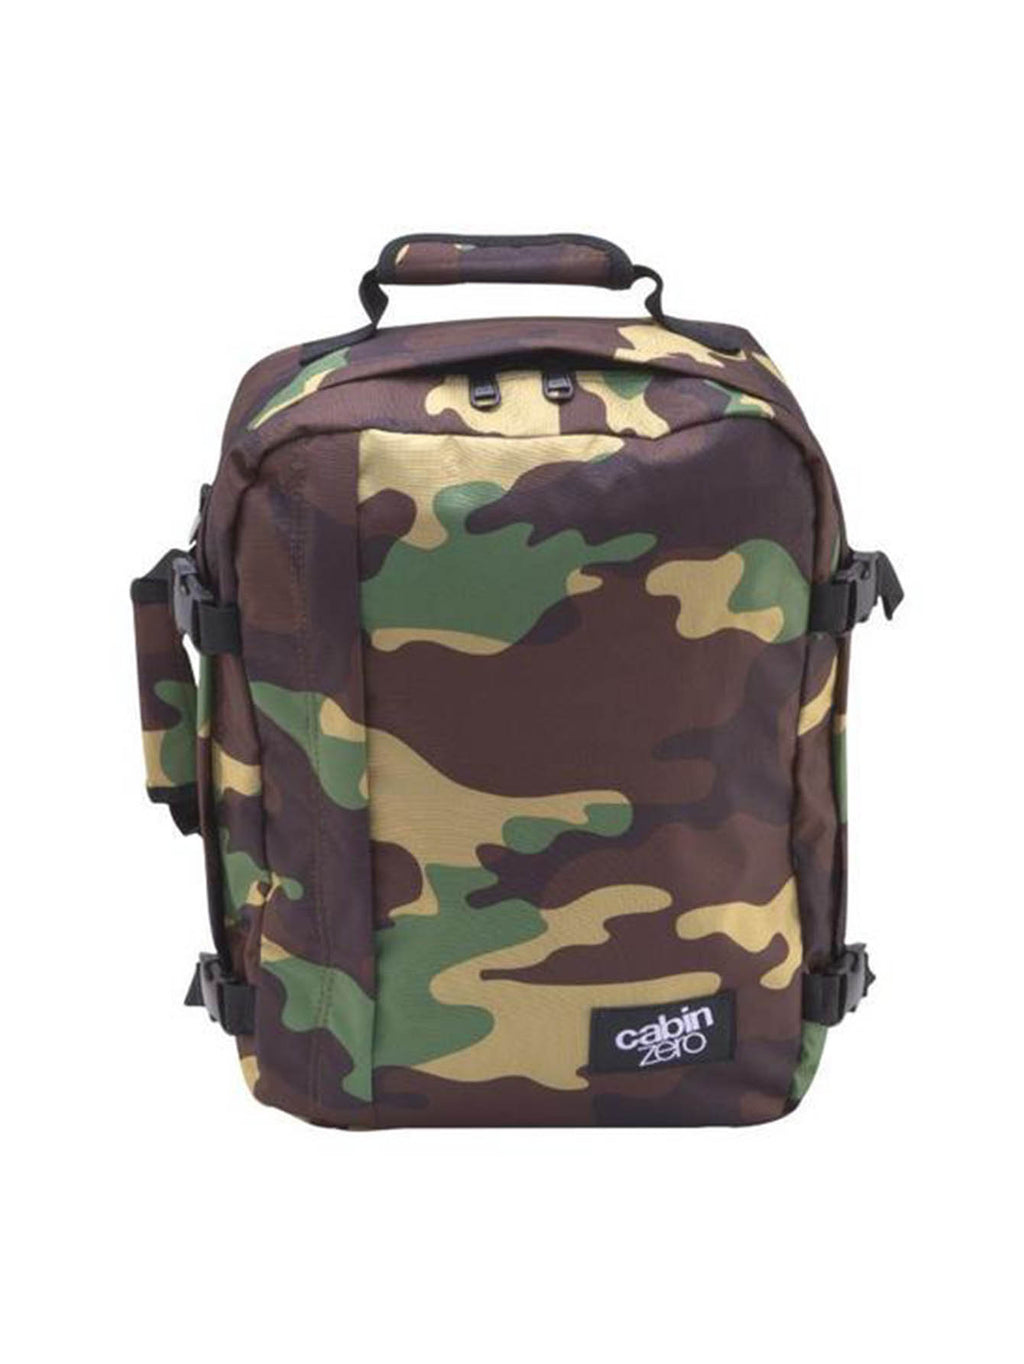 Cabinzero Classic 28L Ultra-Light Cabin Bag in Jungle Camo Color